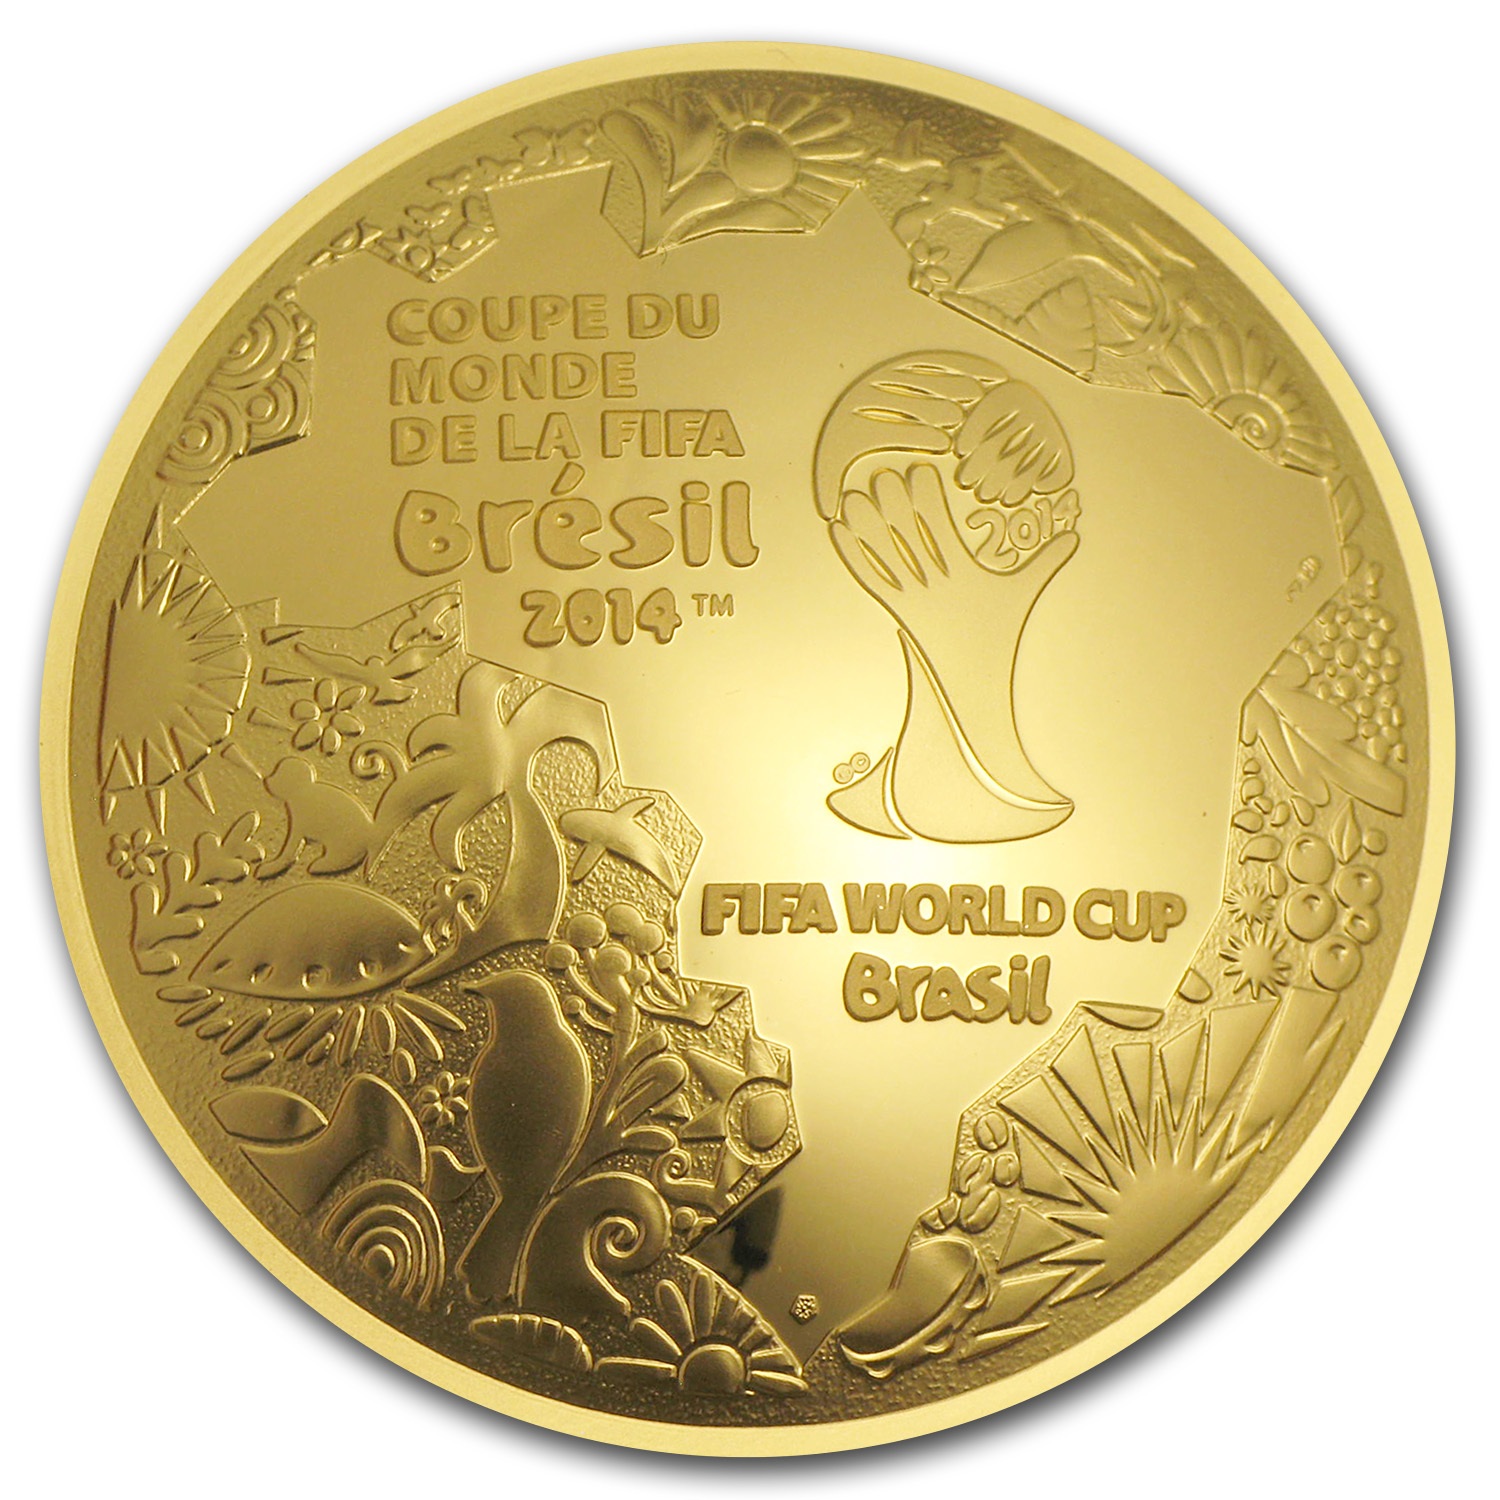 2014 France €200 1 oz Gold Proof - FIFA World Cup